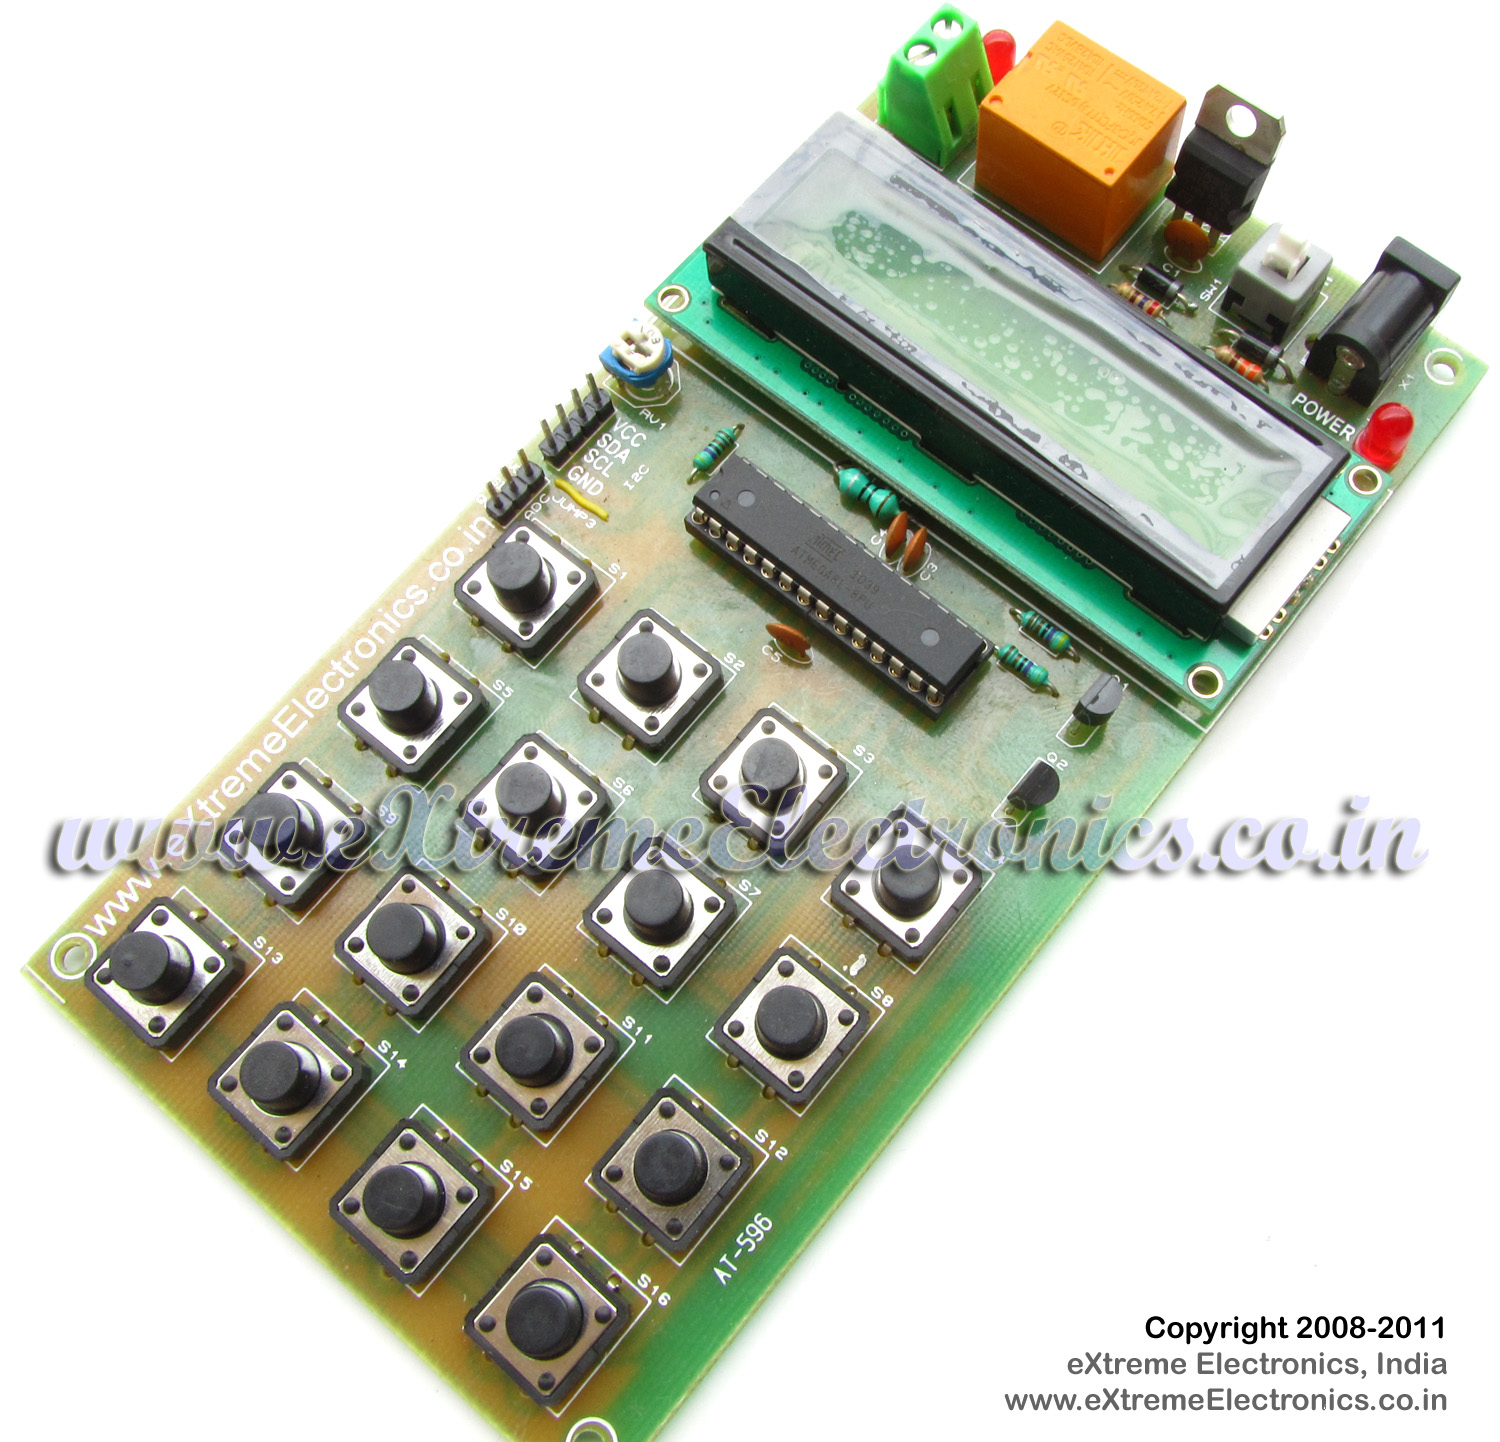 Buy Code Lock Avr Atmega8 Project Low Cost In India Ac Fan Speed Control Electronics Forum Circuits Projects And Based